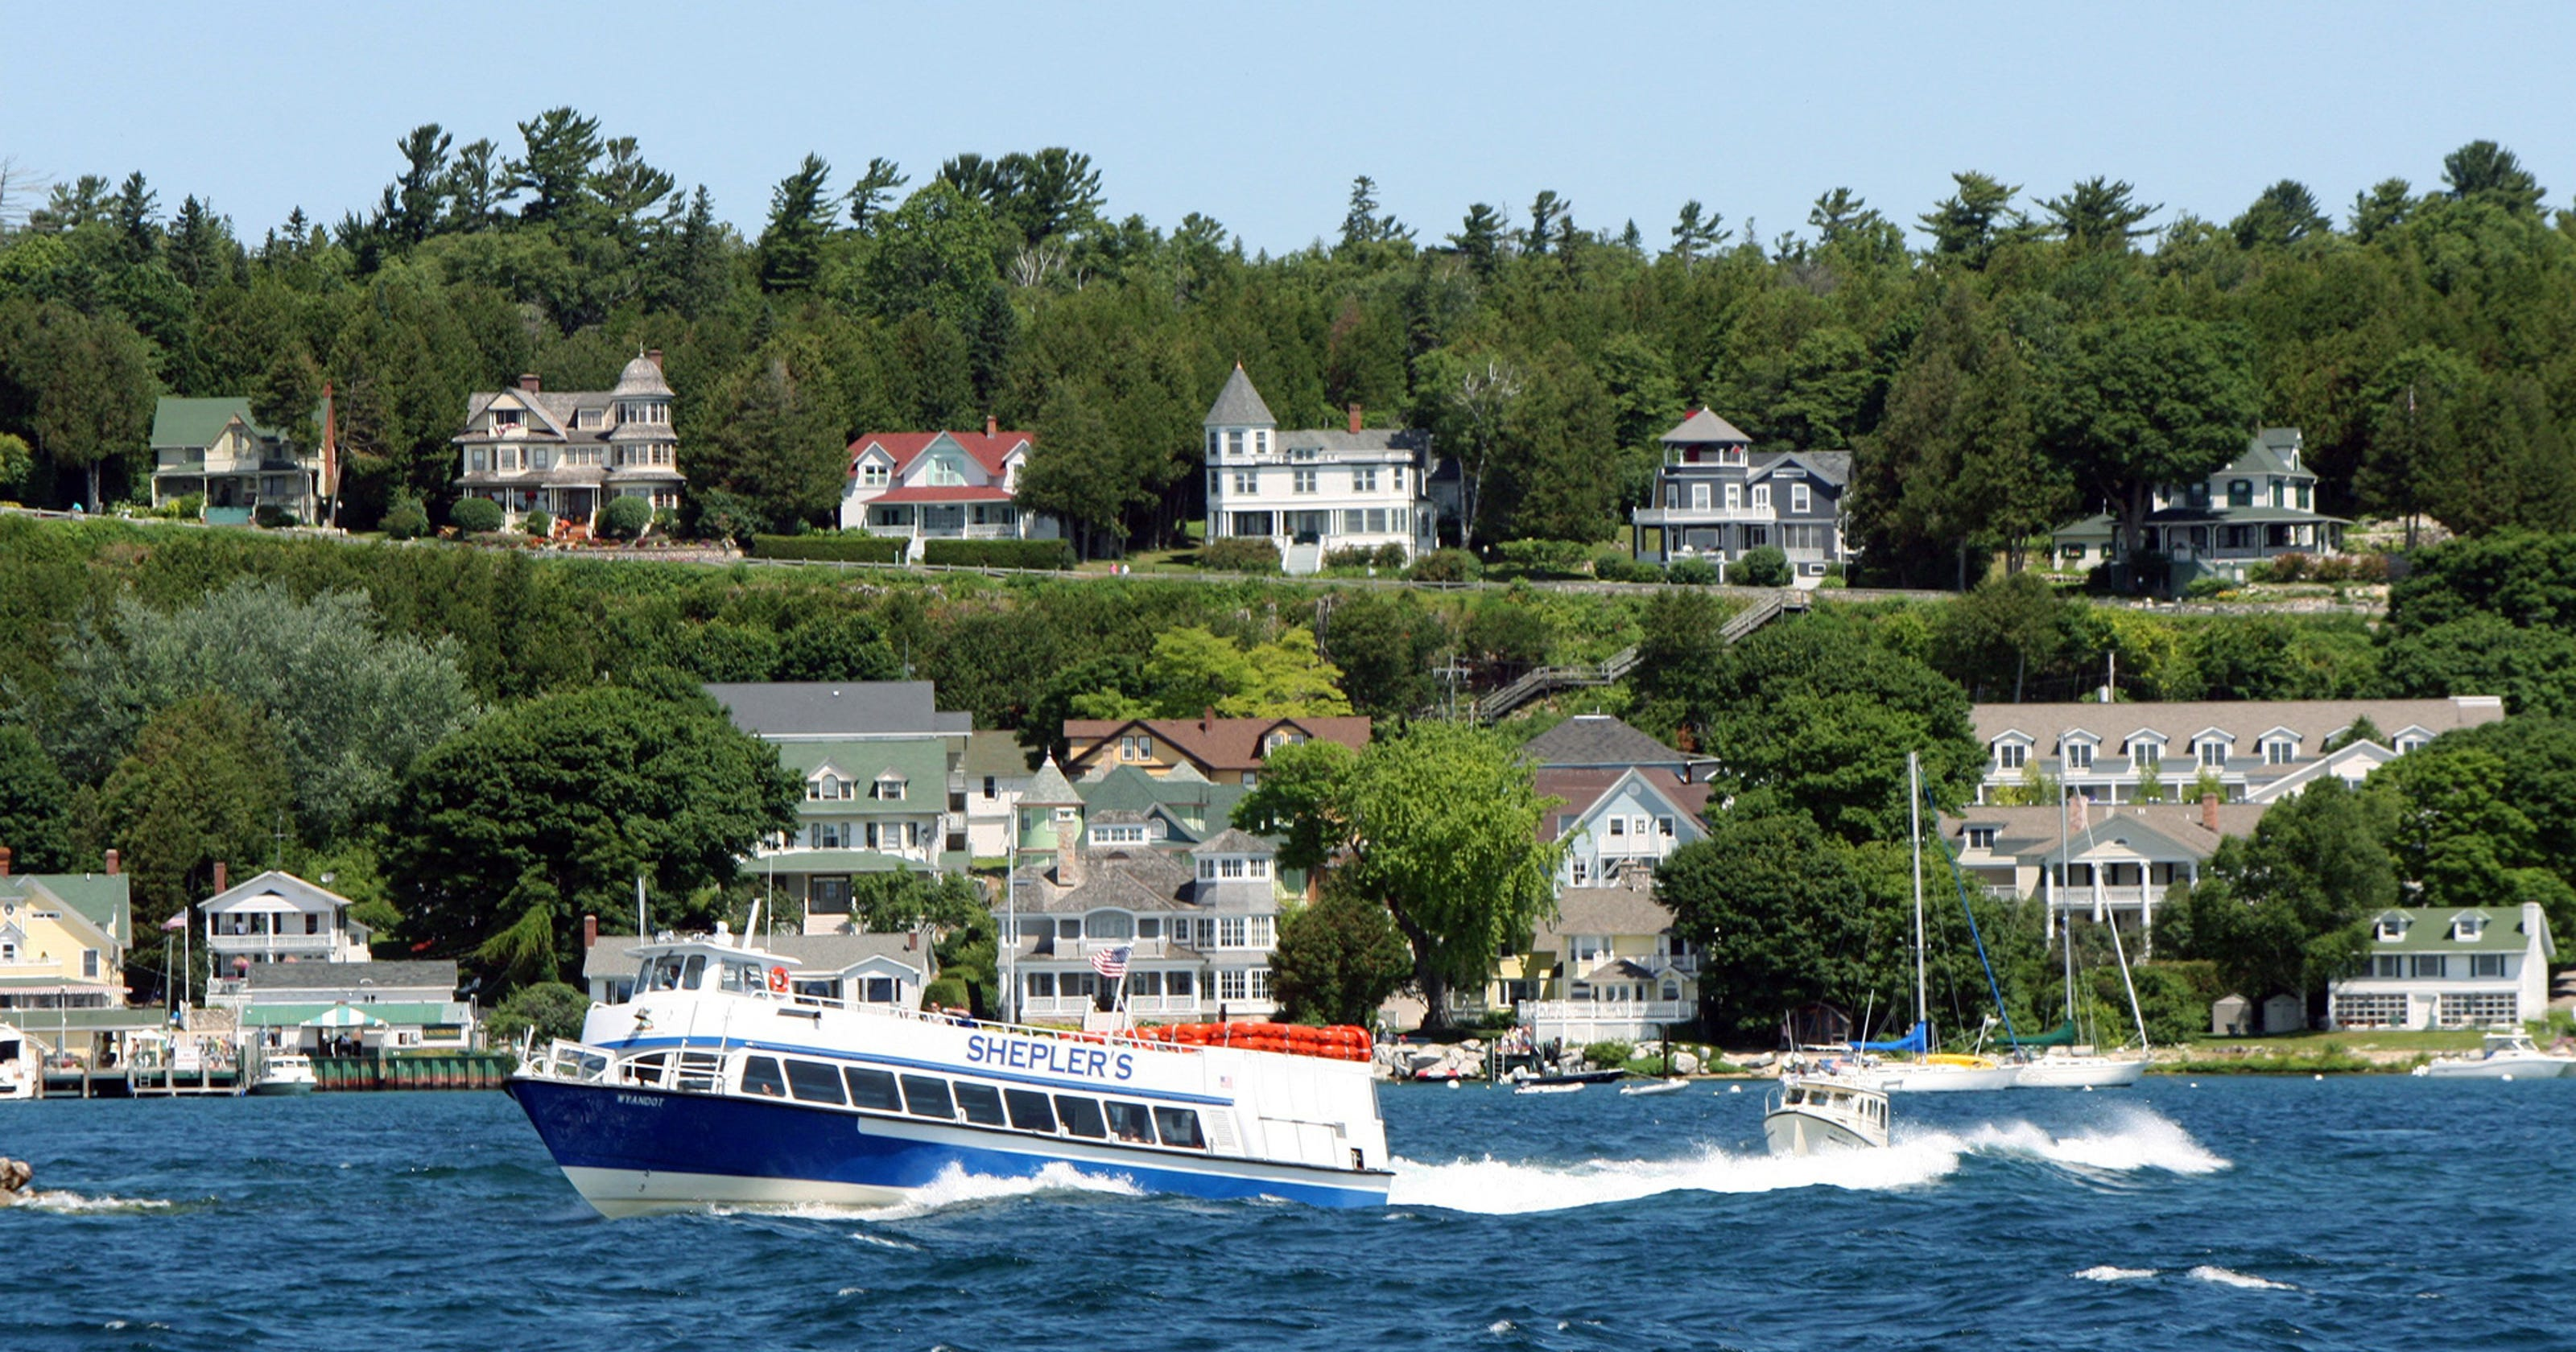 How To Get To Mackinac Island From Detroit